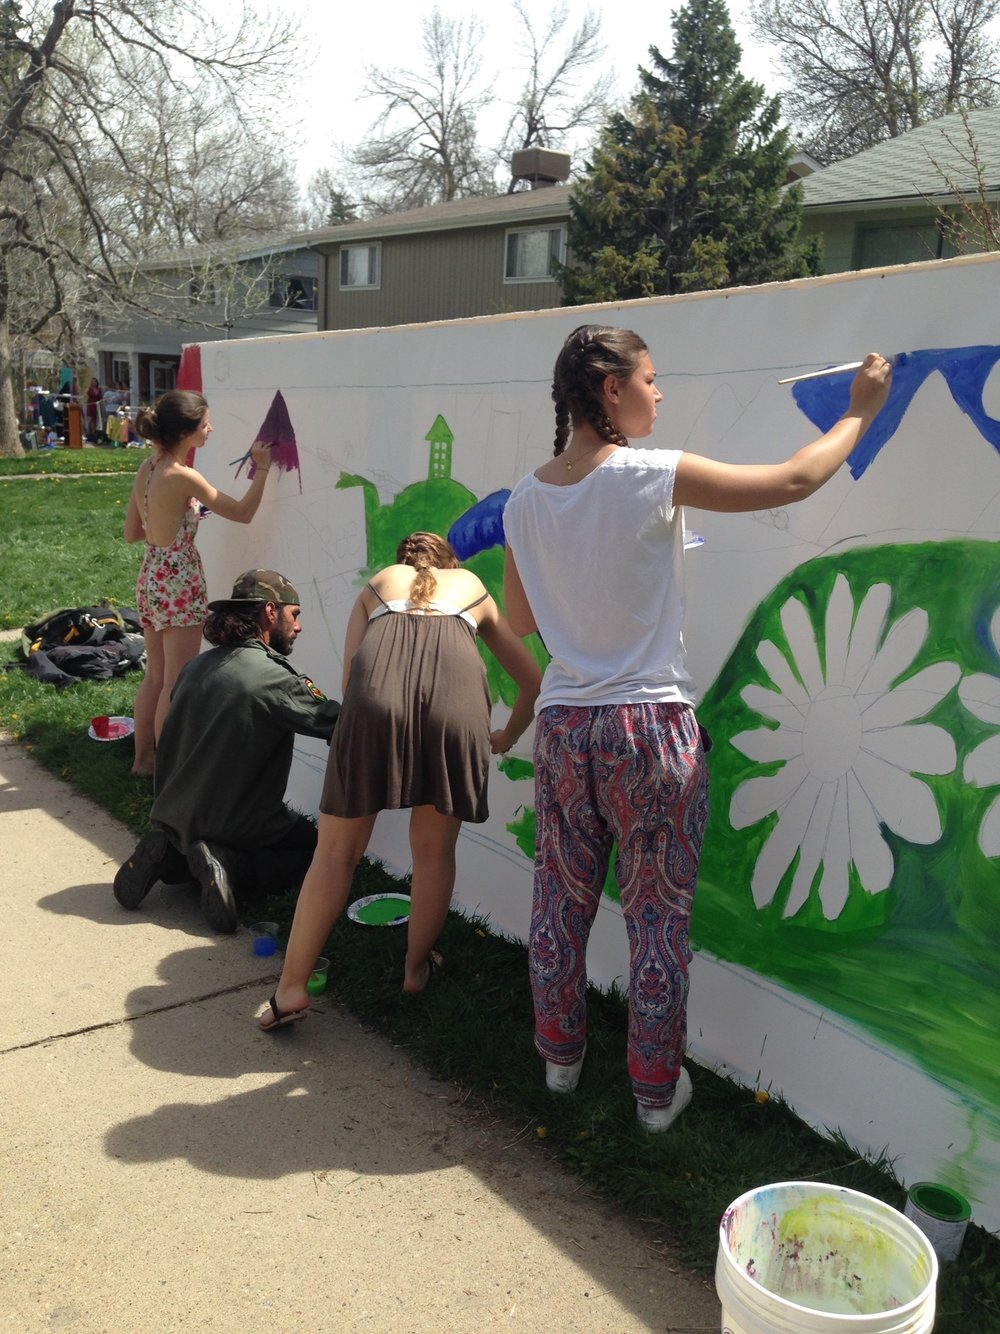 Mural painting during Fossil-Free Your Life North St. Block Party, Earth Day 2016